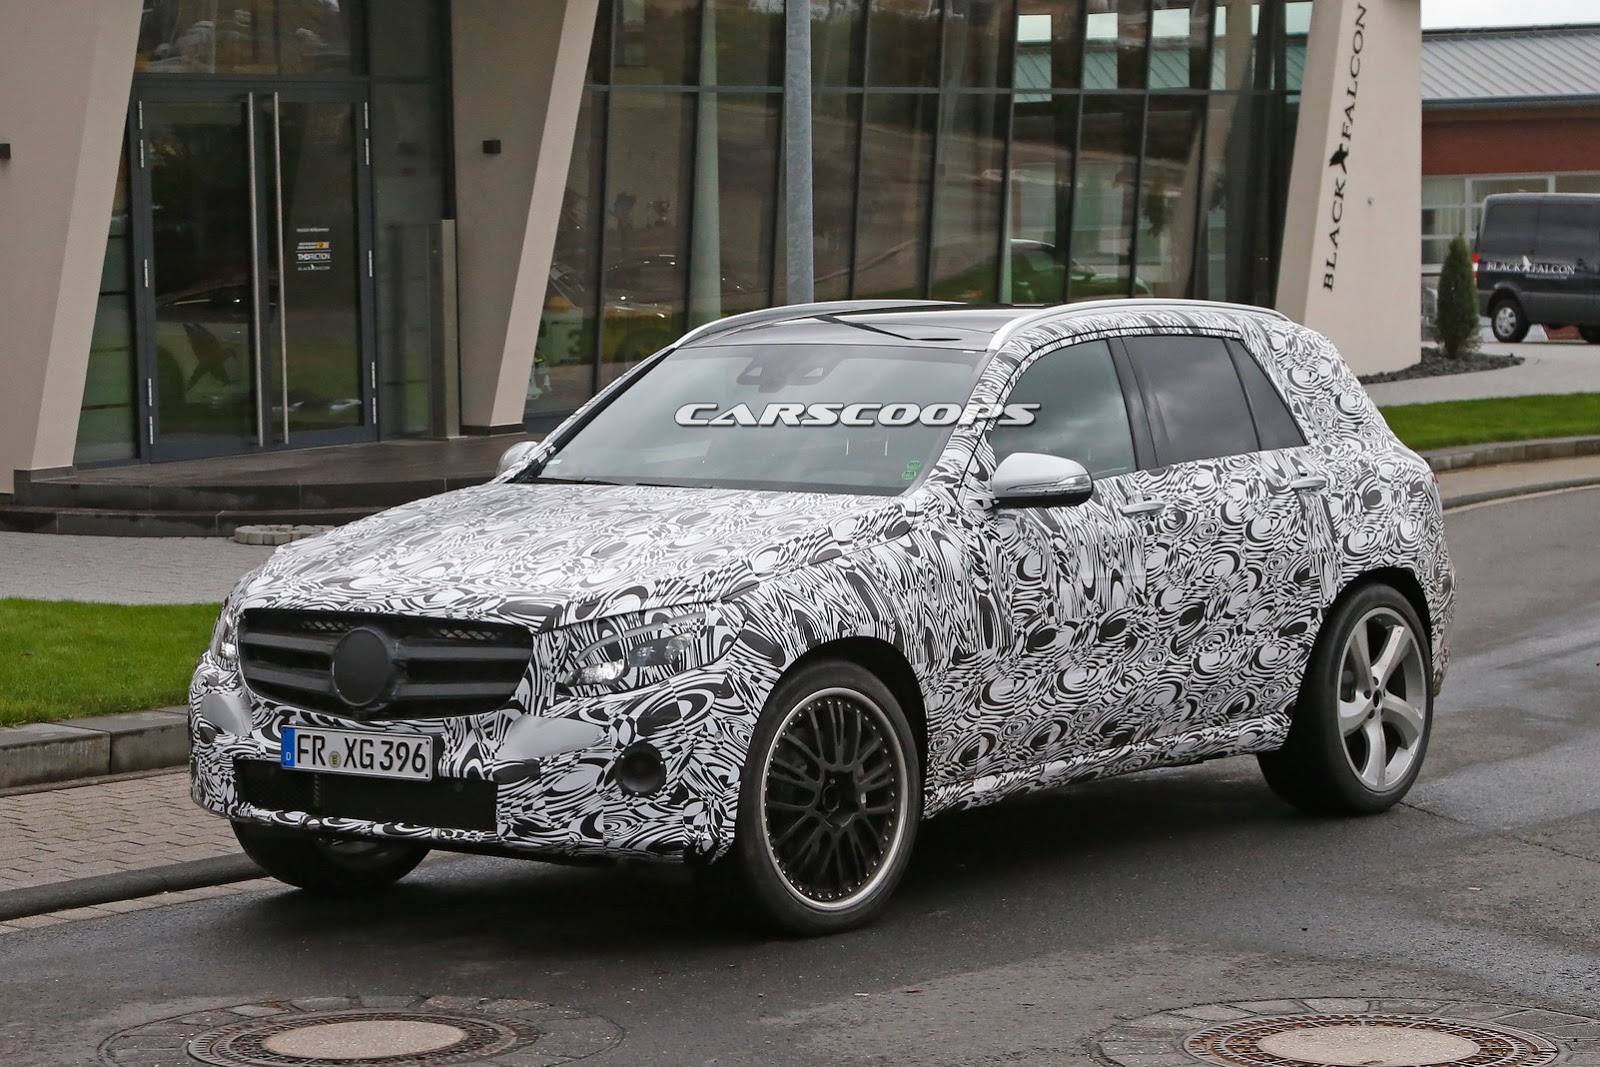 All Types glk amg : Scoop: Mercedes' Next GLK Might Get an AMG Version After All ...